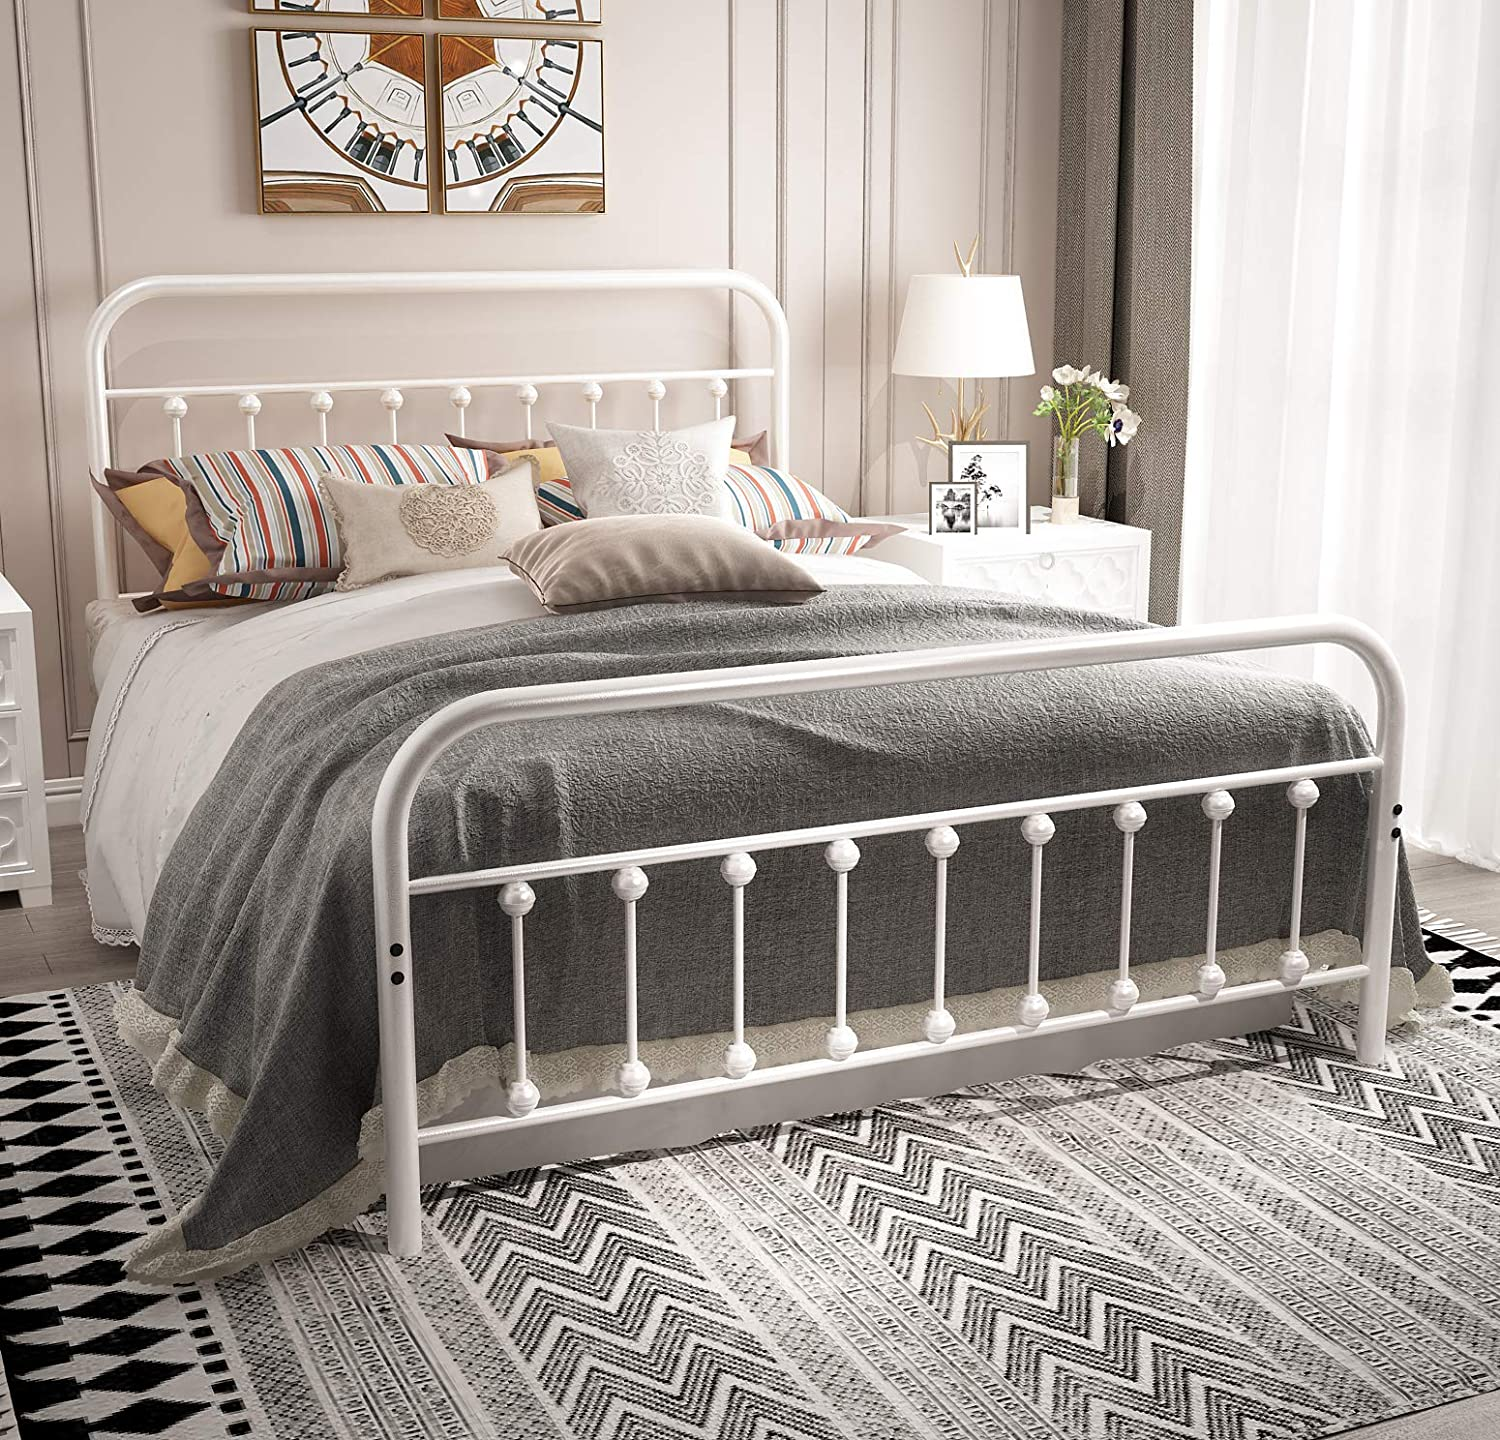 Queen Platform Metal Bed Frame with Headboard and Footboard,Vintage Victorian Style Mattress Foundation, No Box Spring Required, Under Bed Storage, Grayish White.